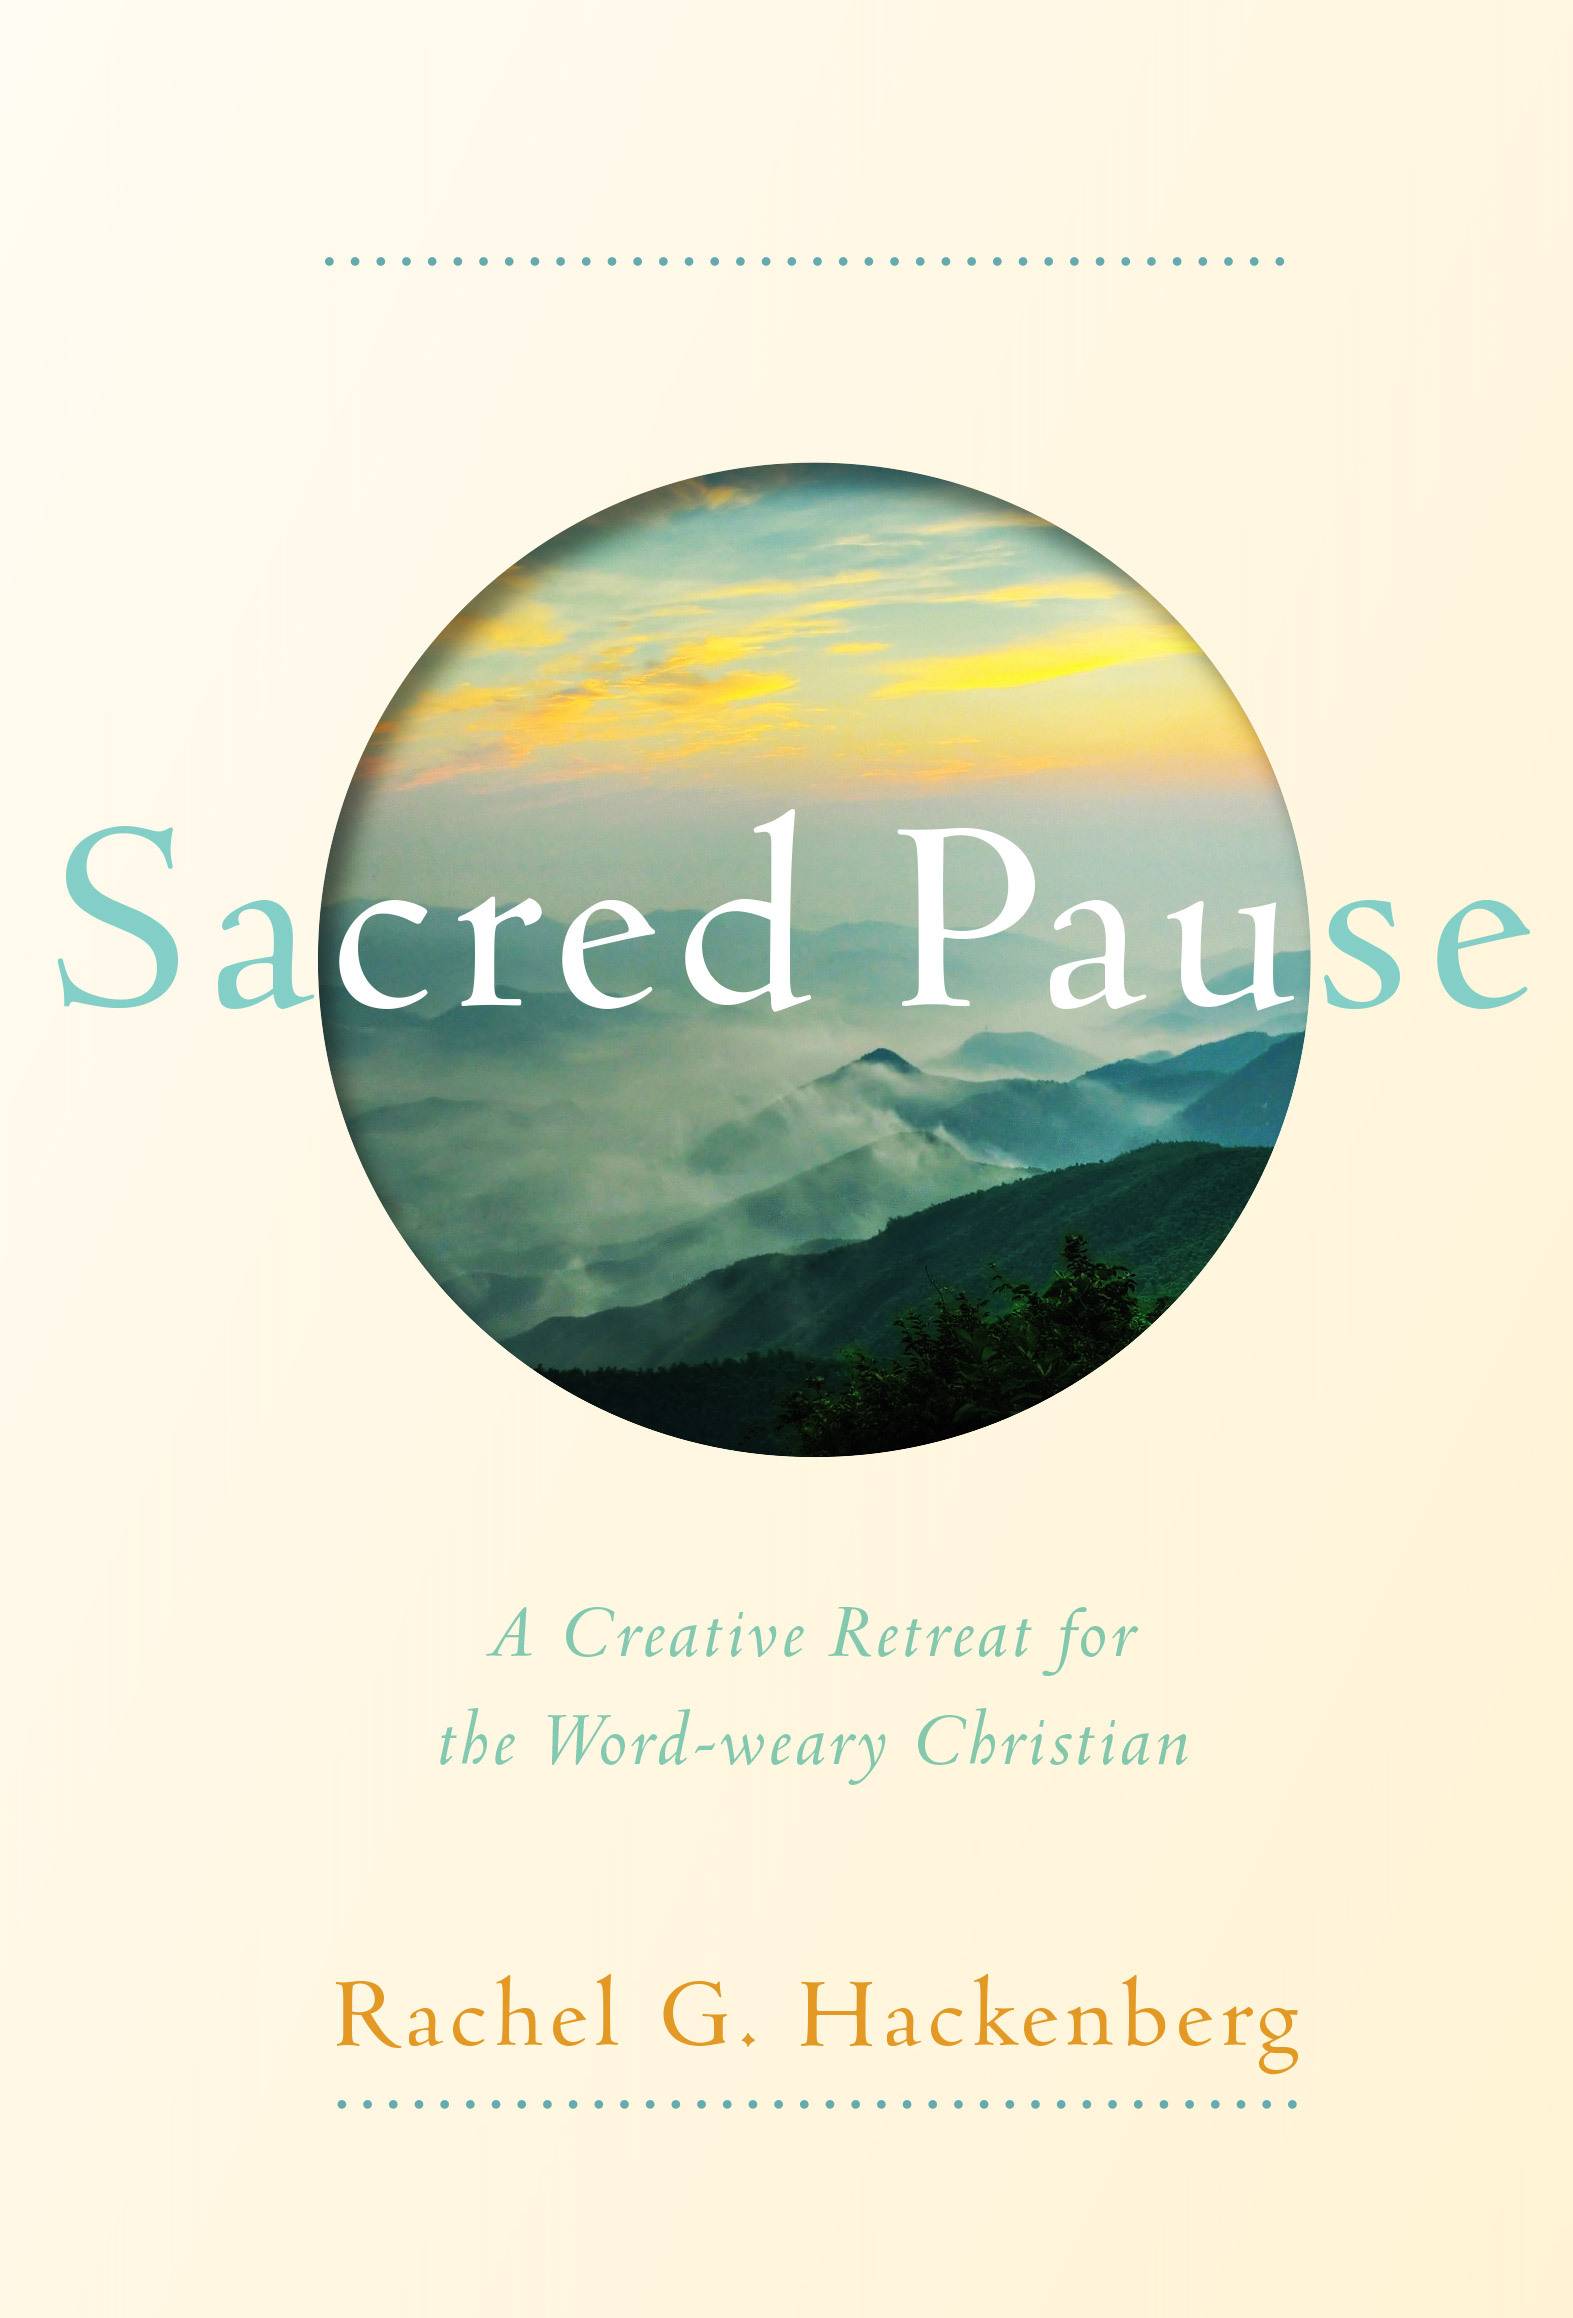 Sacred Pause: A Creative Retreat for the Word-weary Christian